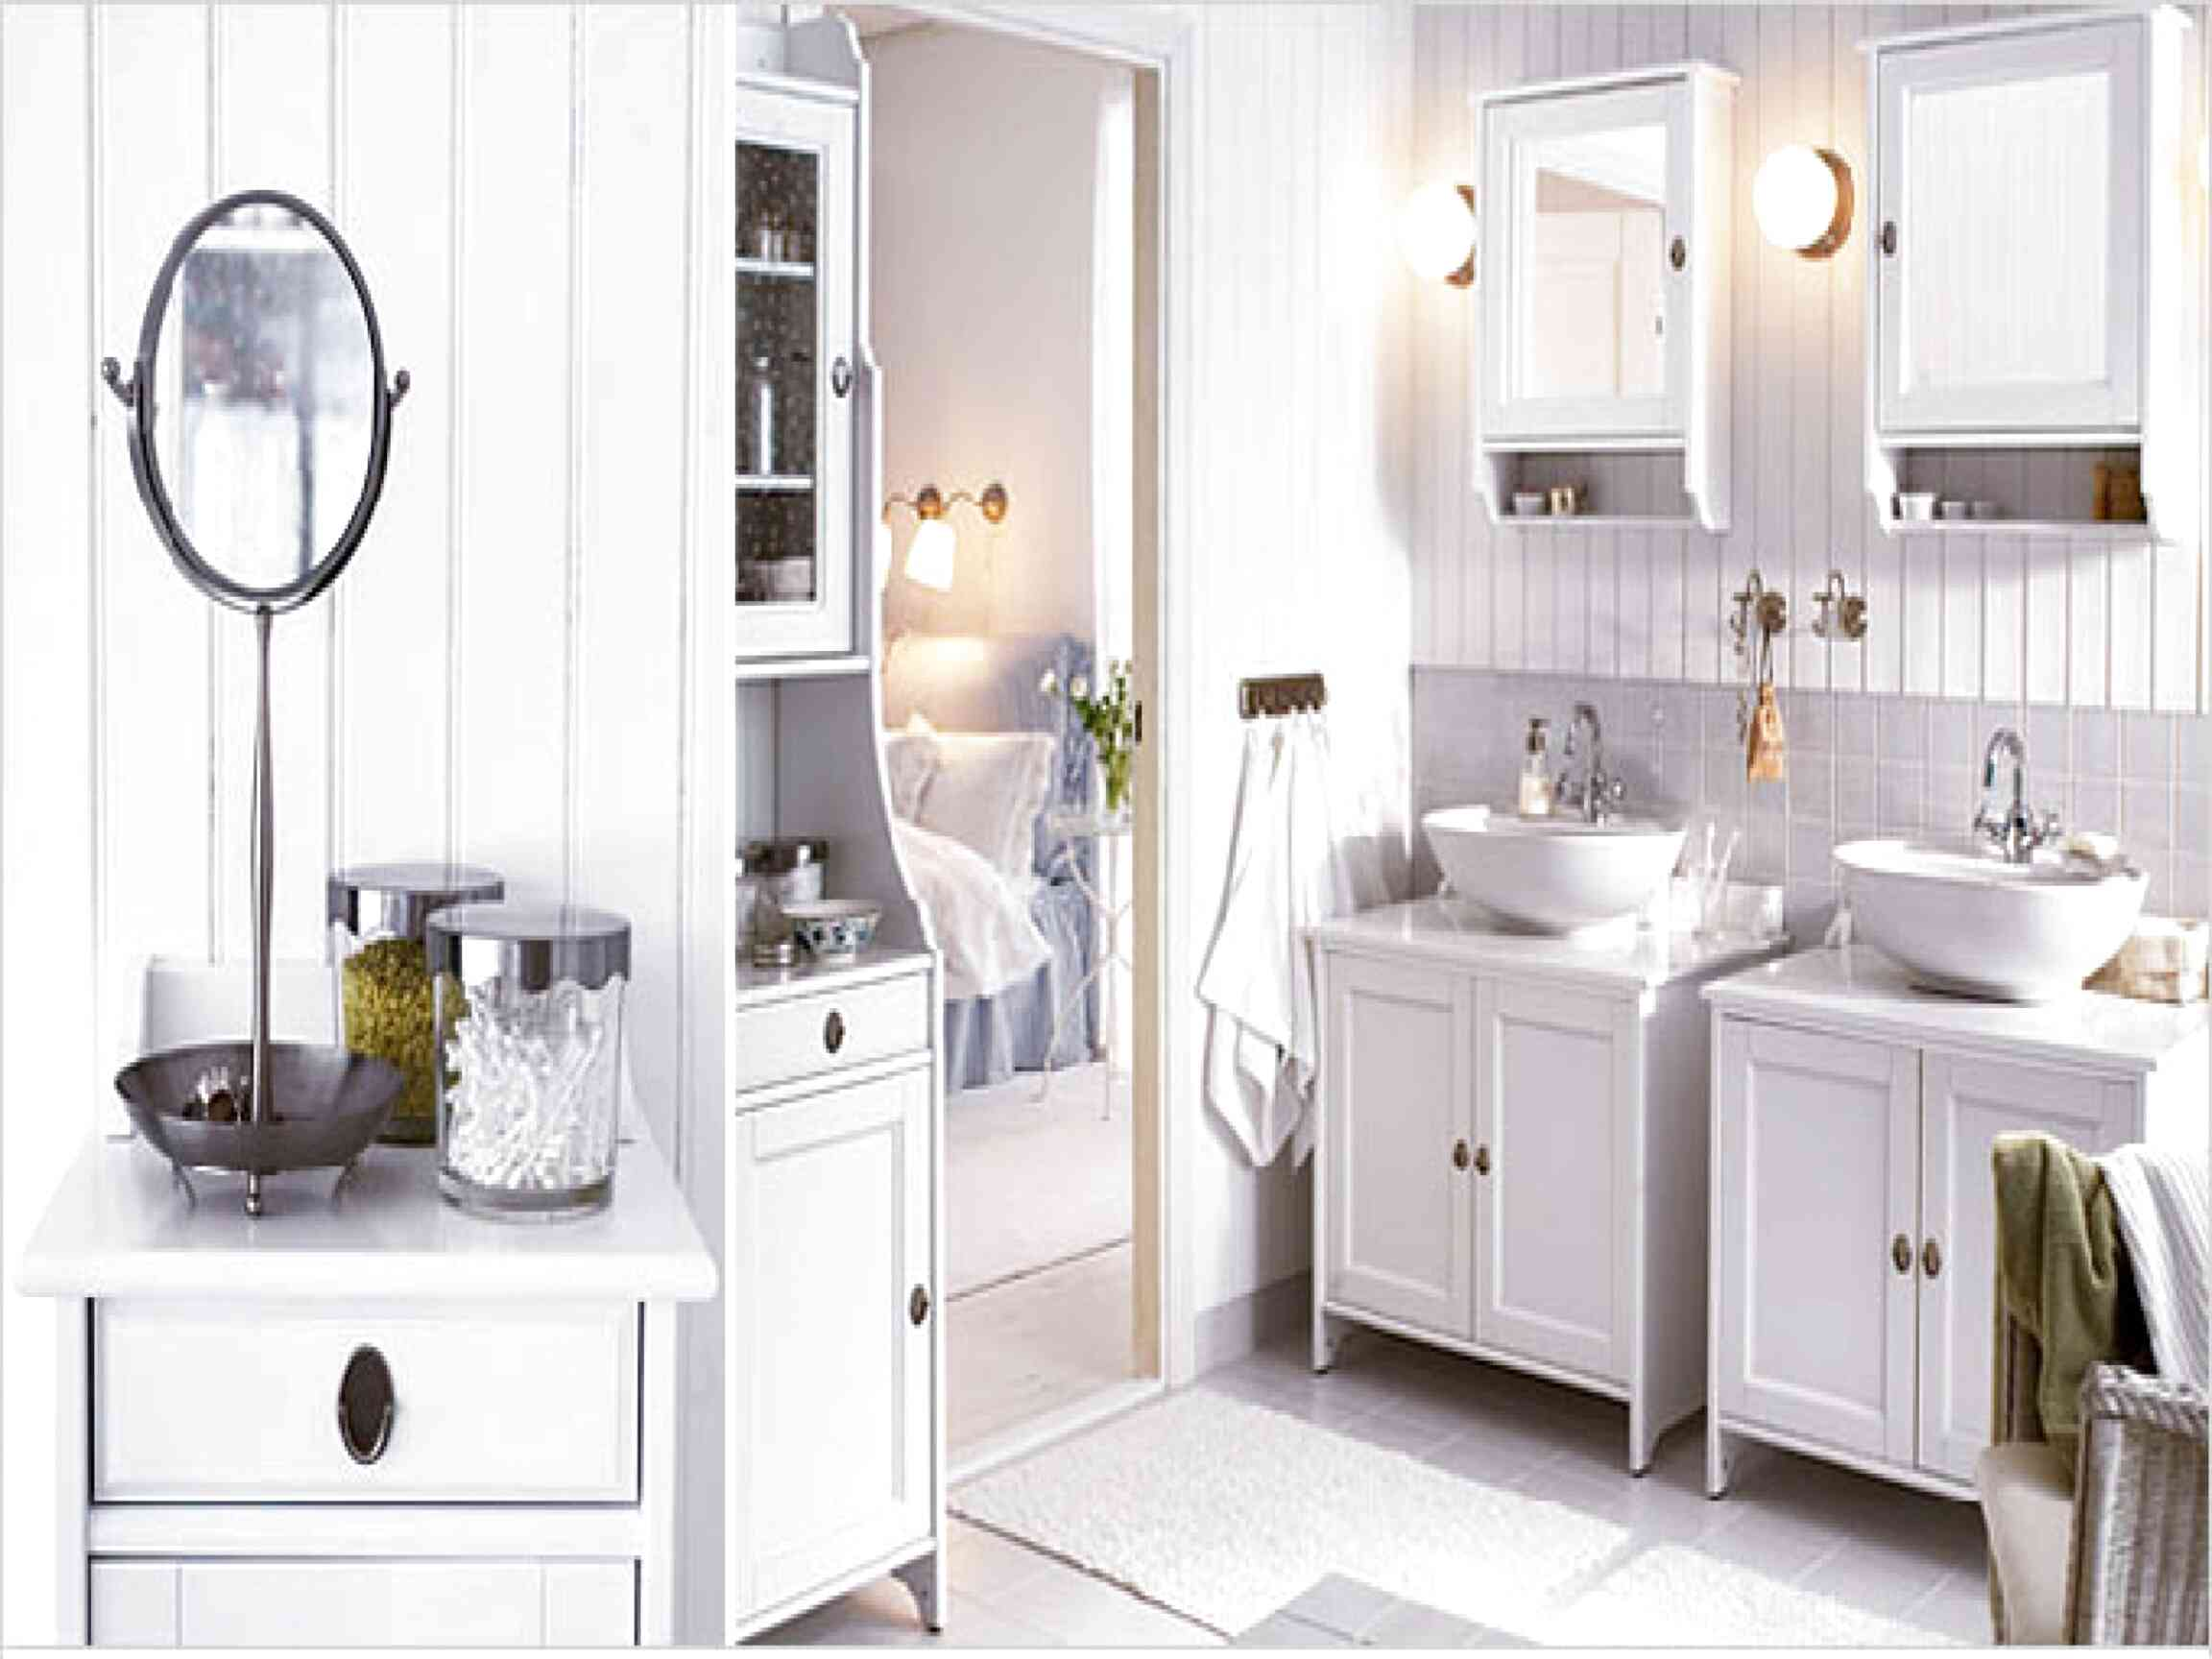 Ikea Bathroom Cabinet for sale in UK | View 72 bargains